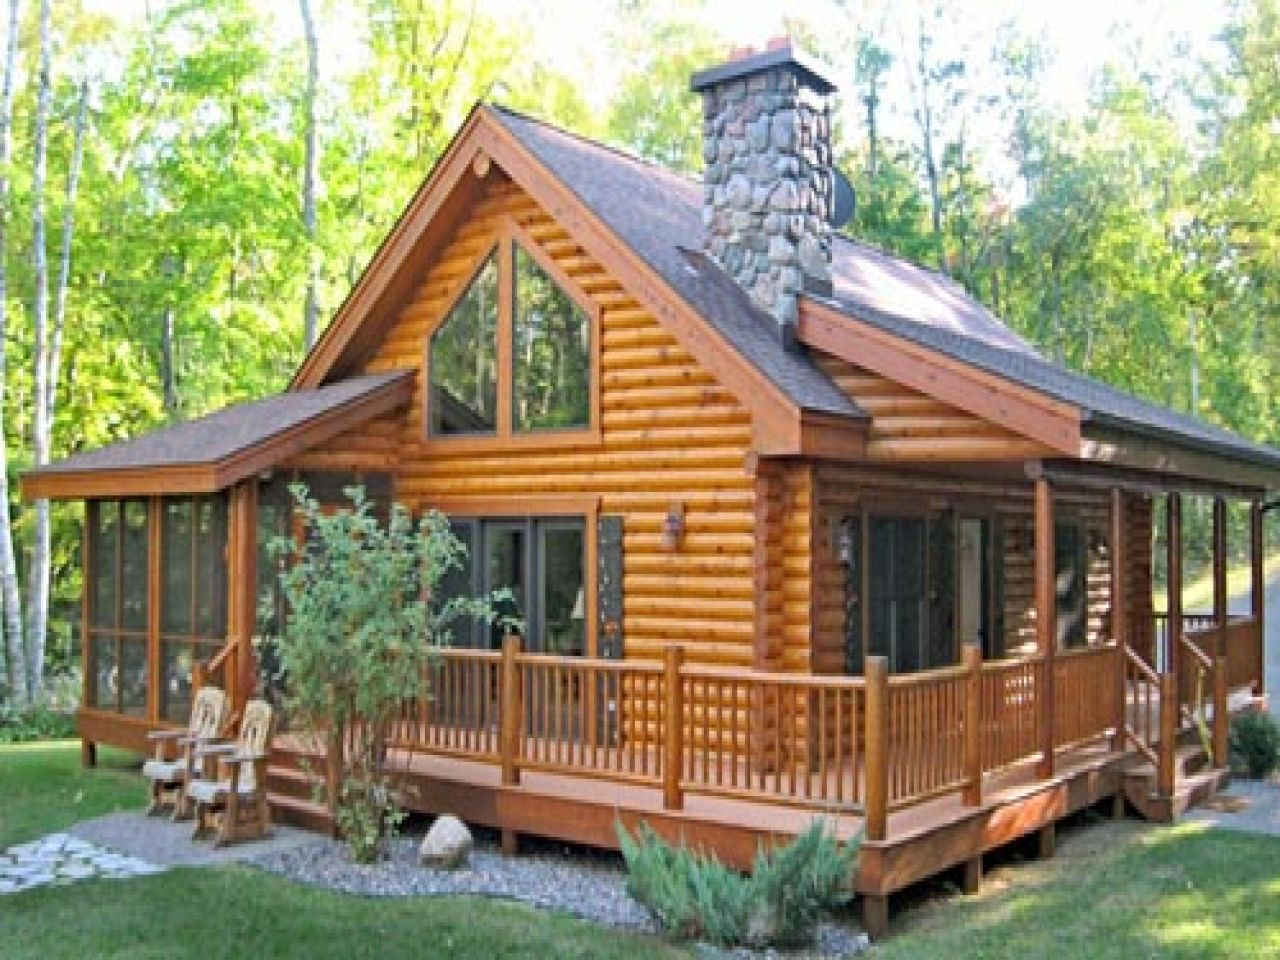 Tiny Log Home Designs: Story Log Cabin Floor Plans Home Single Plan Trends Design